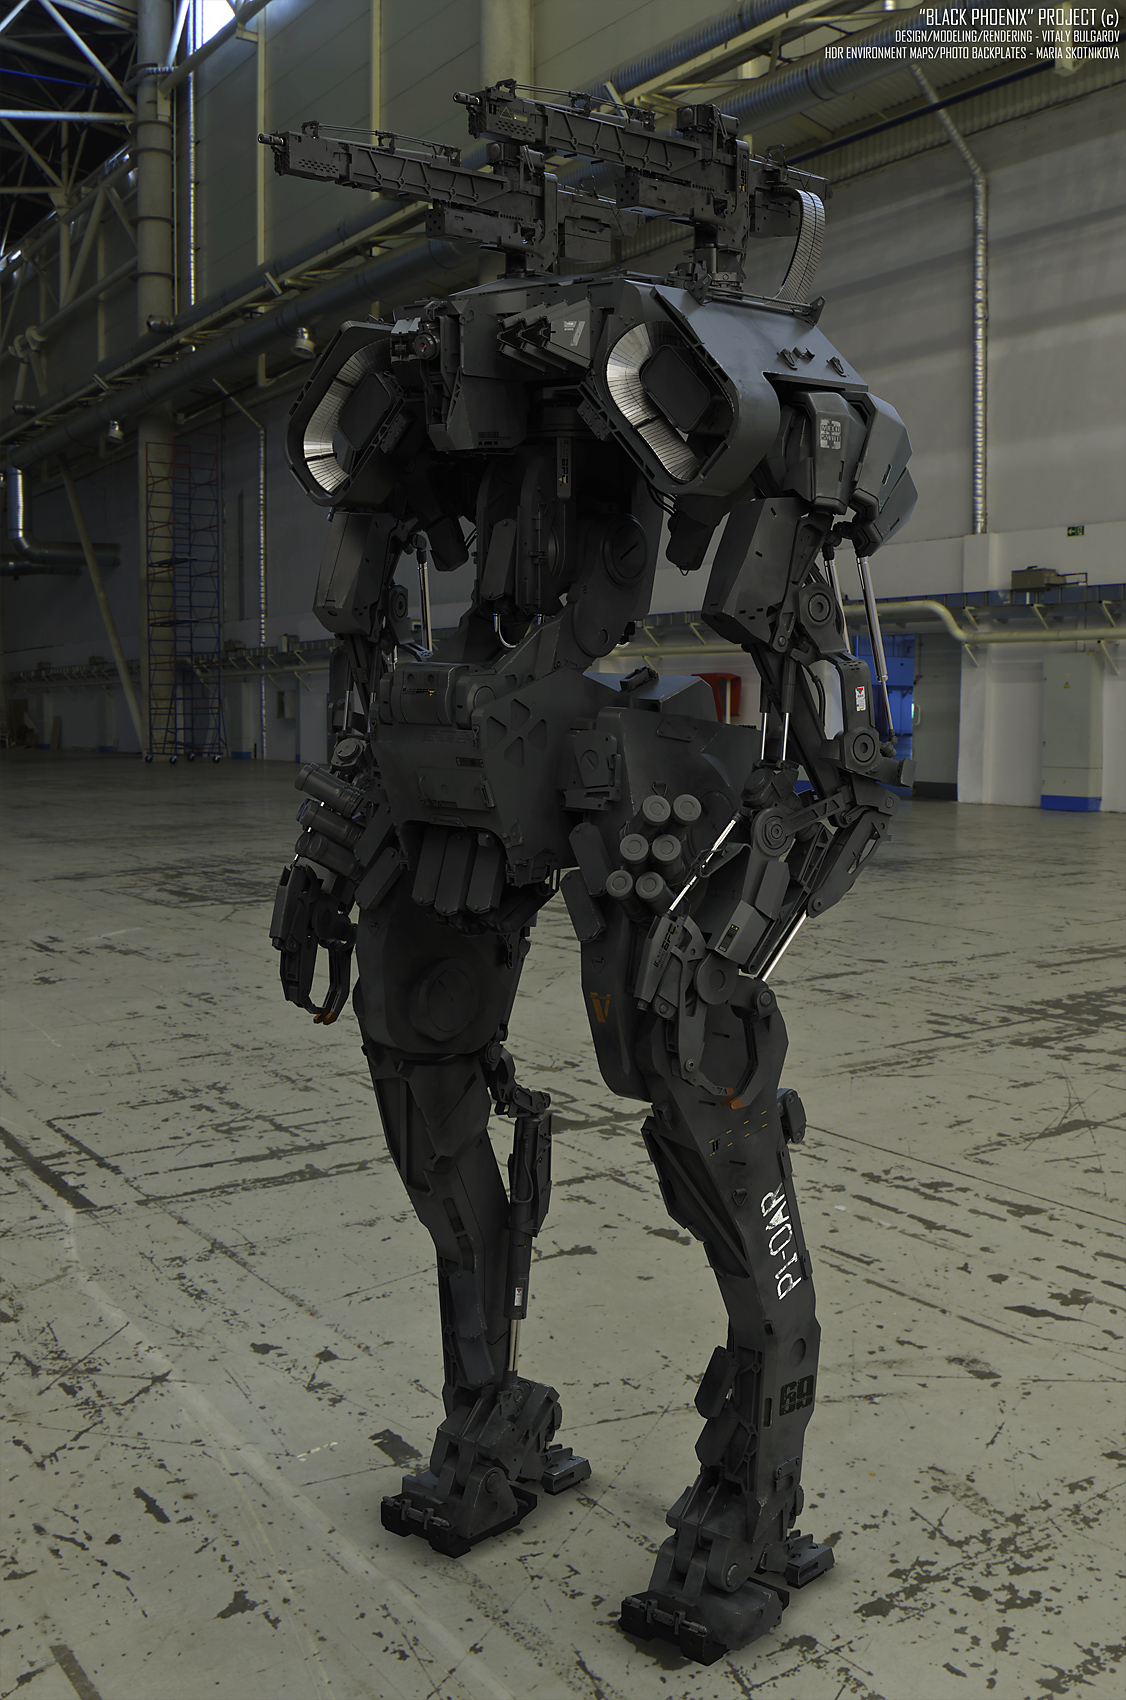 Praetorian P1: one of the designs from Vitaly's Black Phoenix project, in which he created 10 mechs in (almost) 10 days.